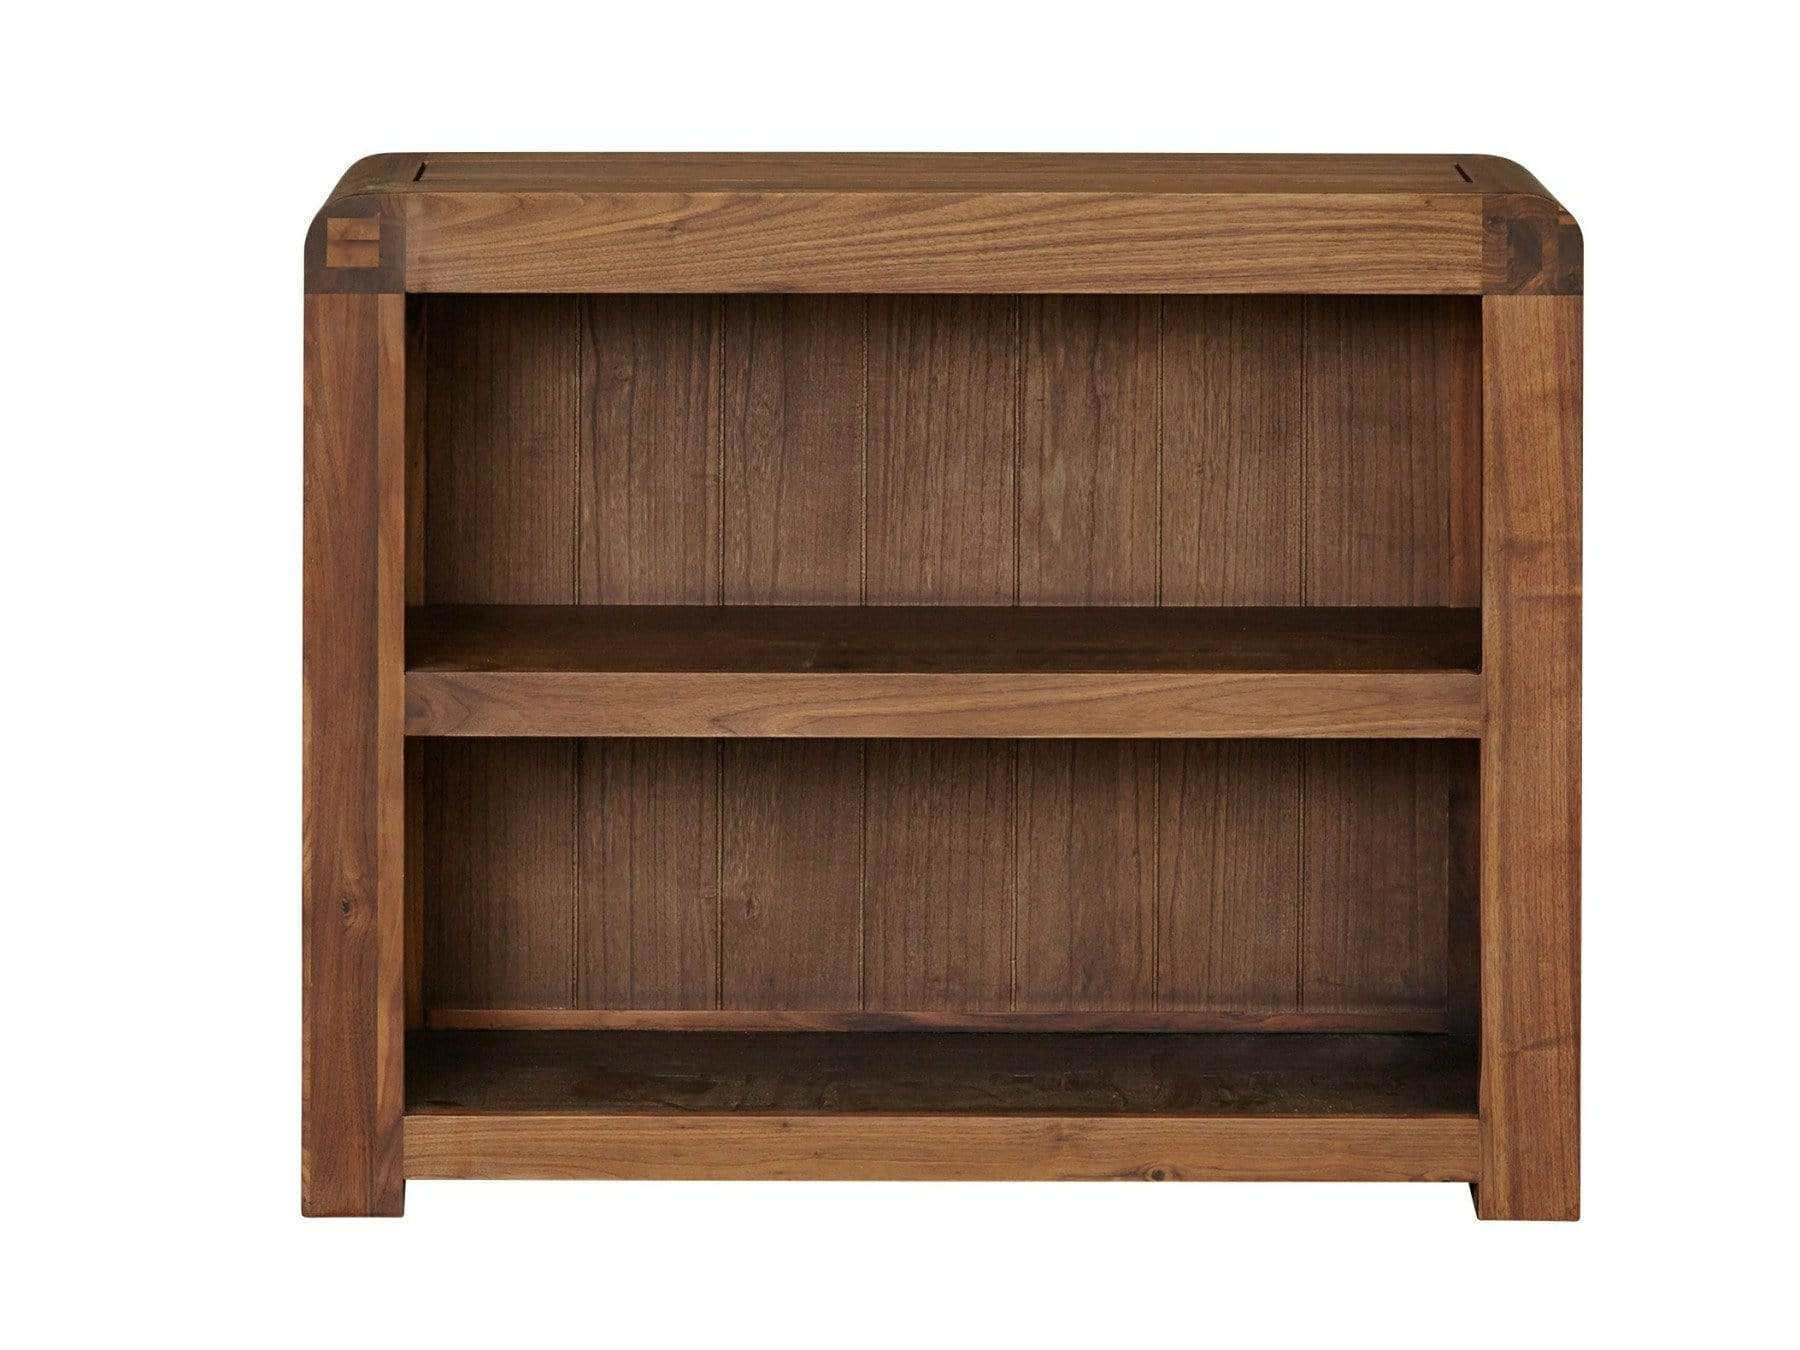 Small bookcase in dark wood with one dividing shelf